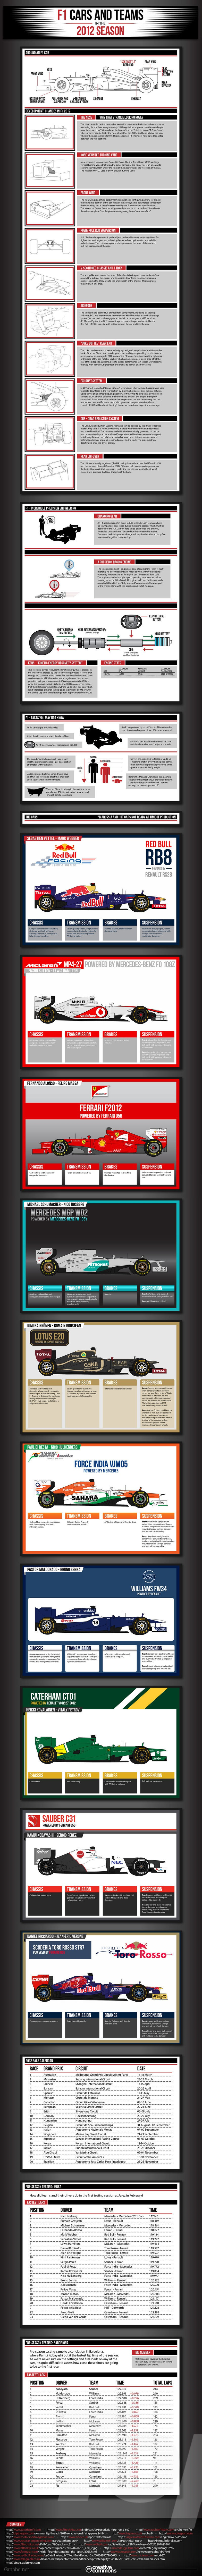 Top F1 Cars and Teams of 2012